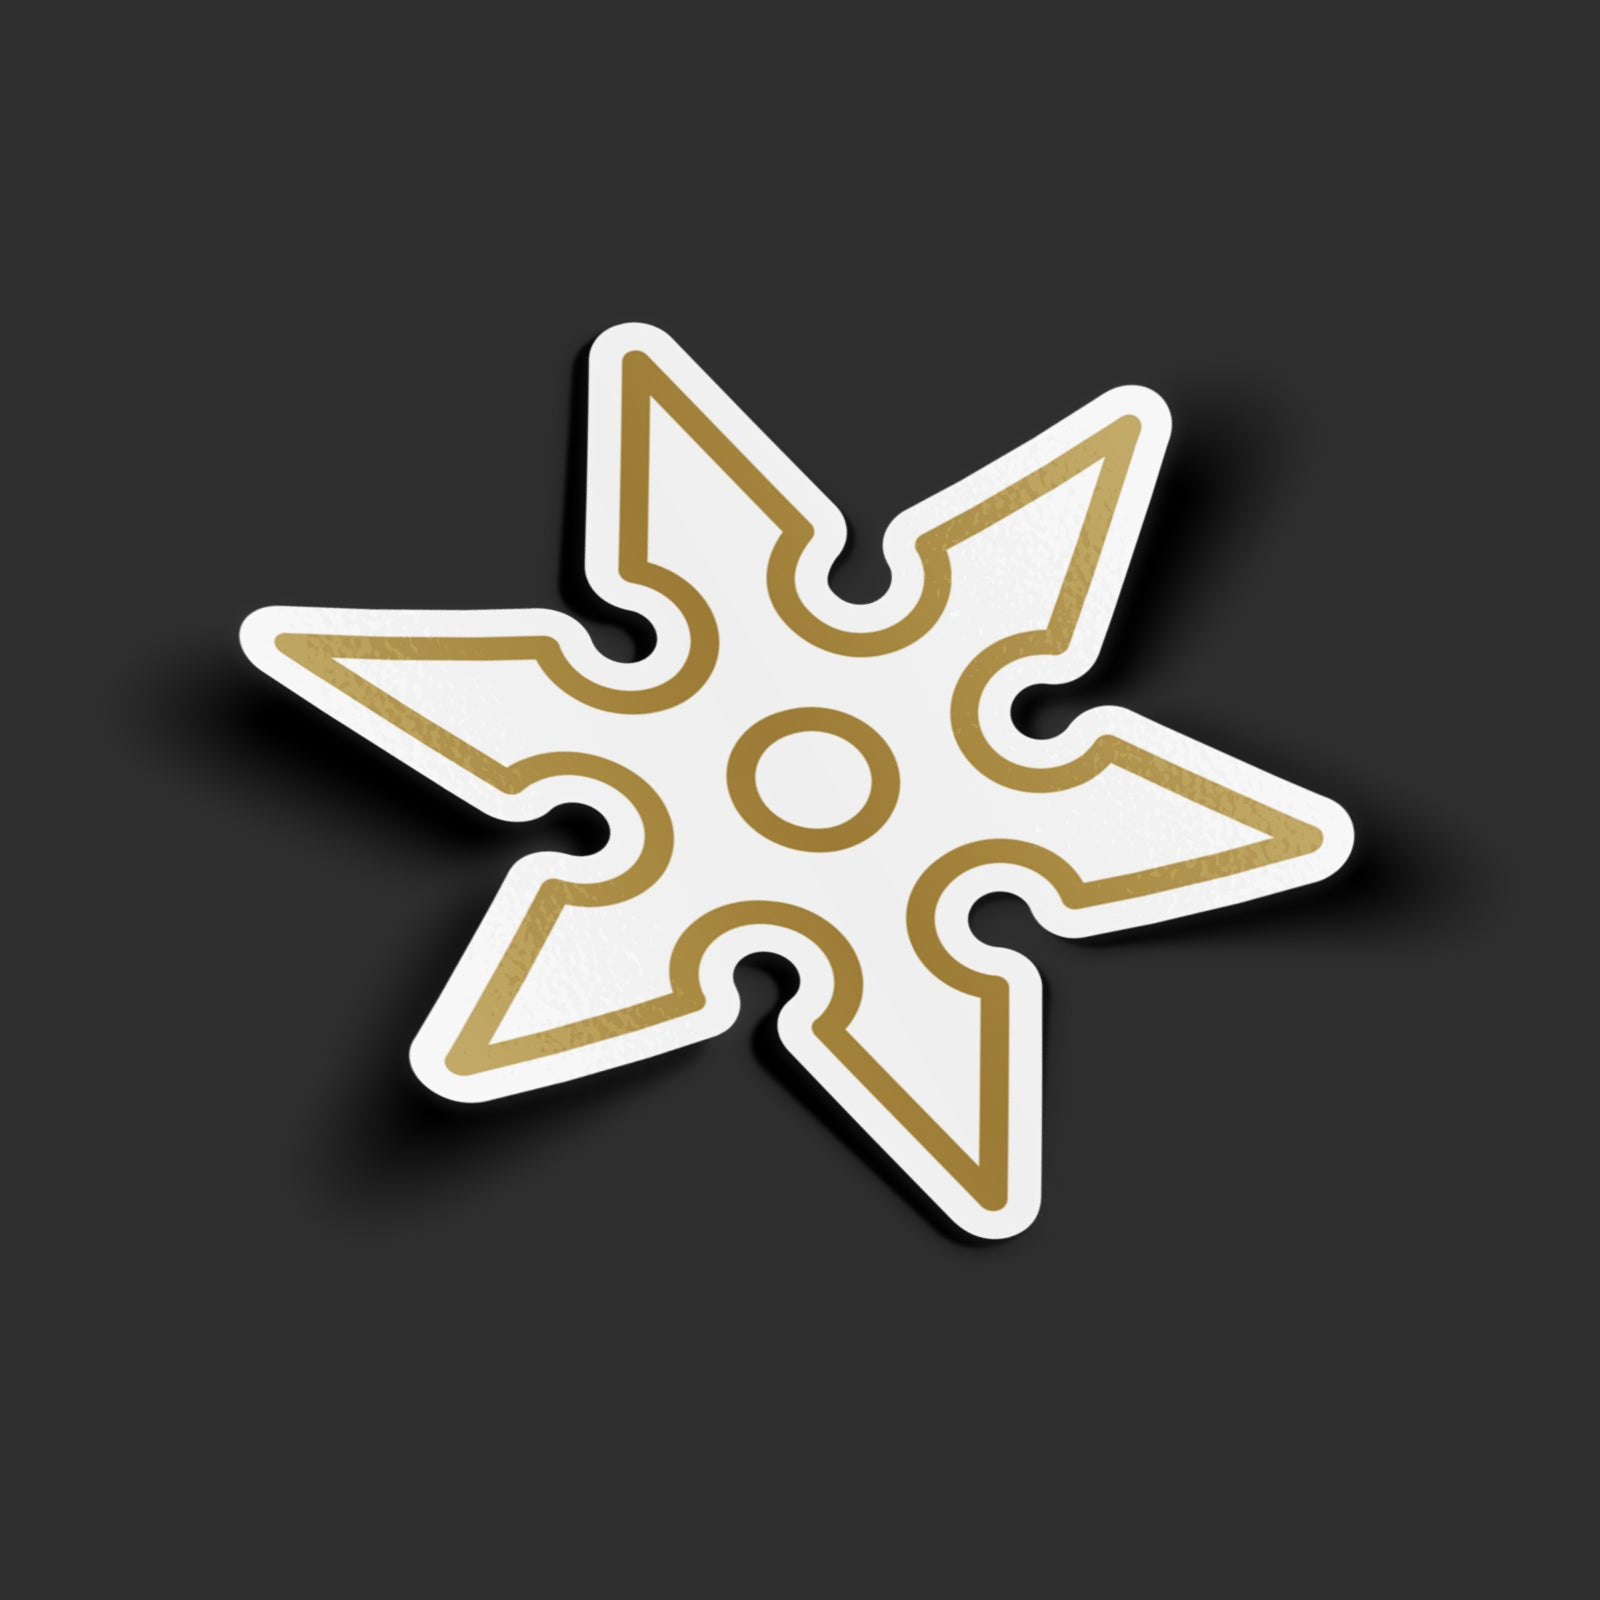 Ninja Star Sticker